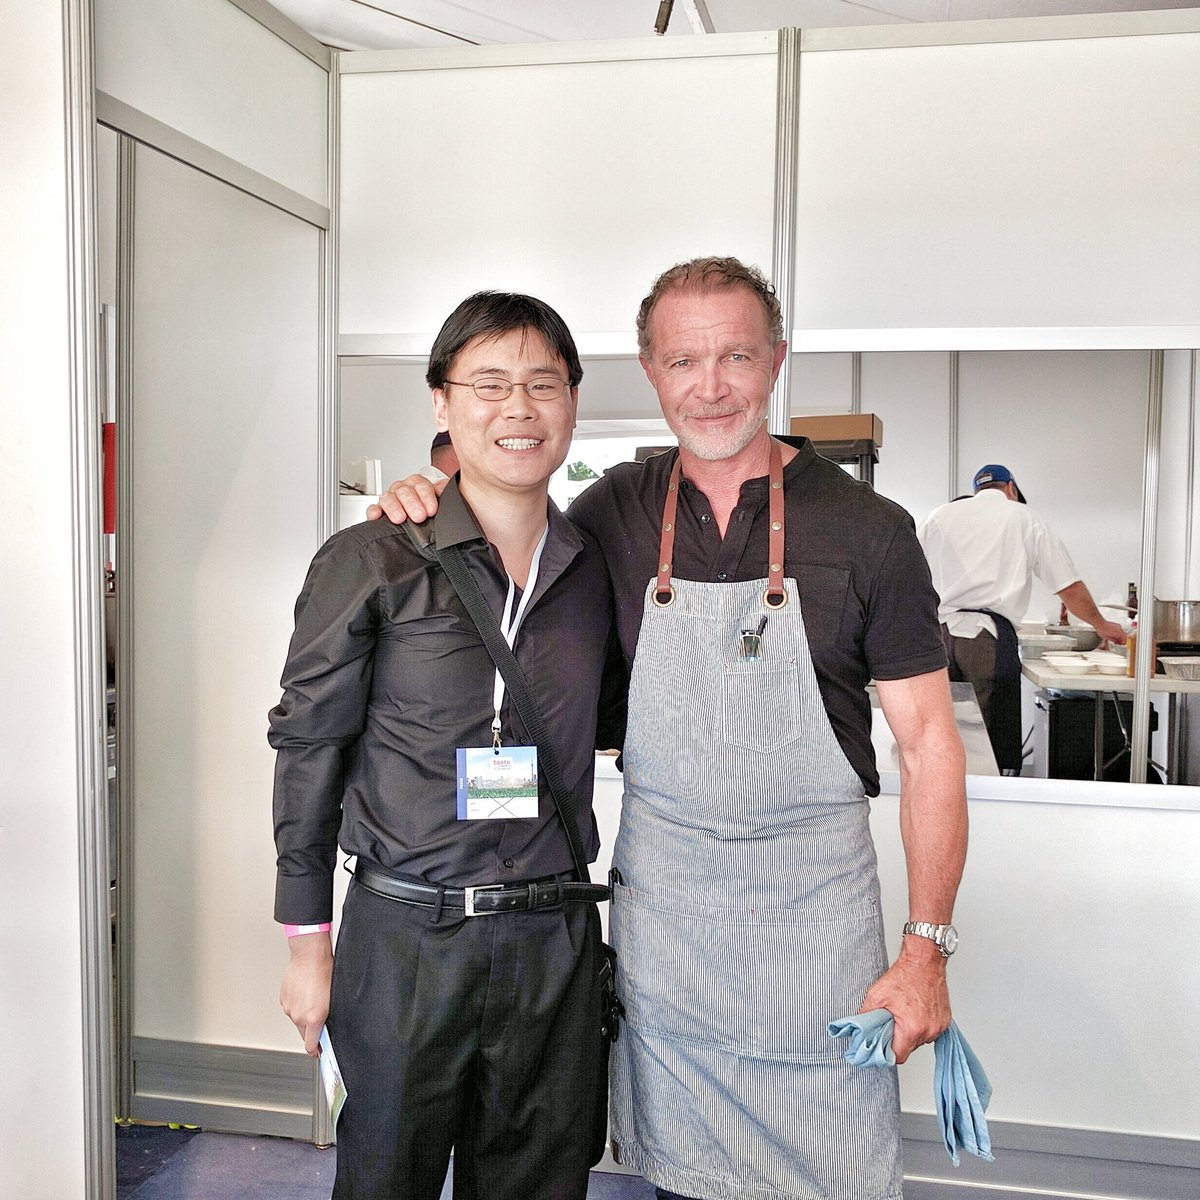 Chef Mark McEwan with Travelling Foodie at Taste of Toronto Festival